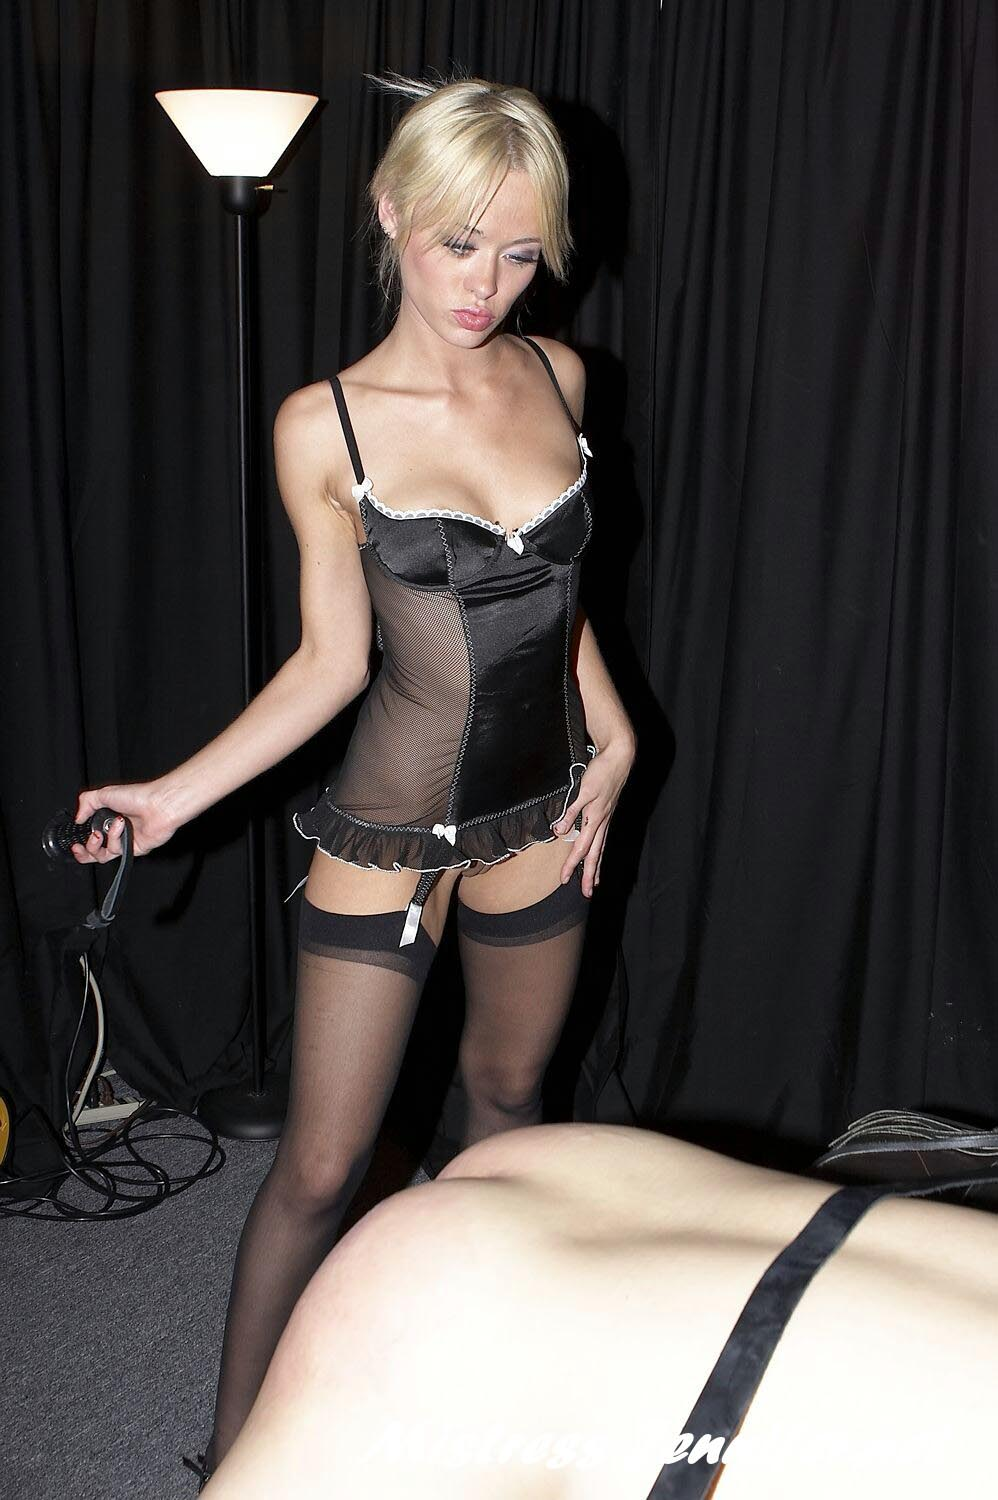 Dom blond mistress big cock tugjob 6